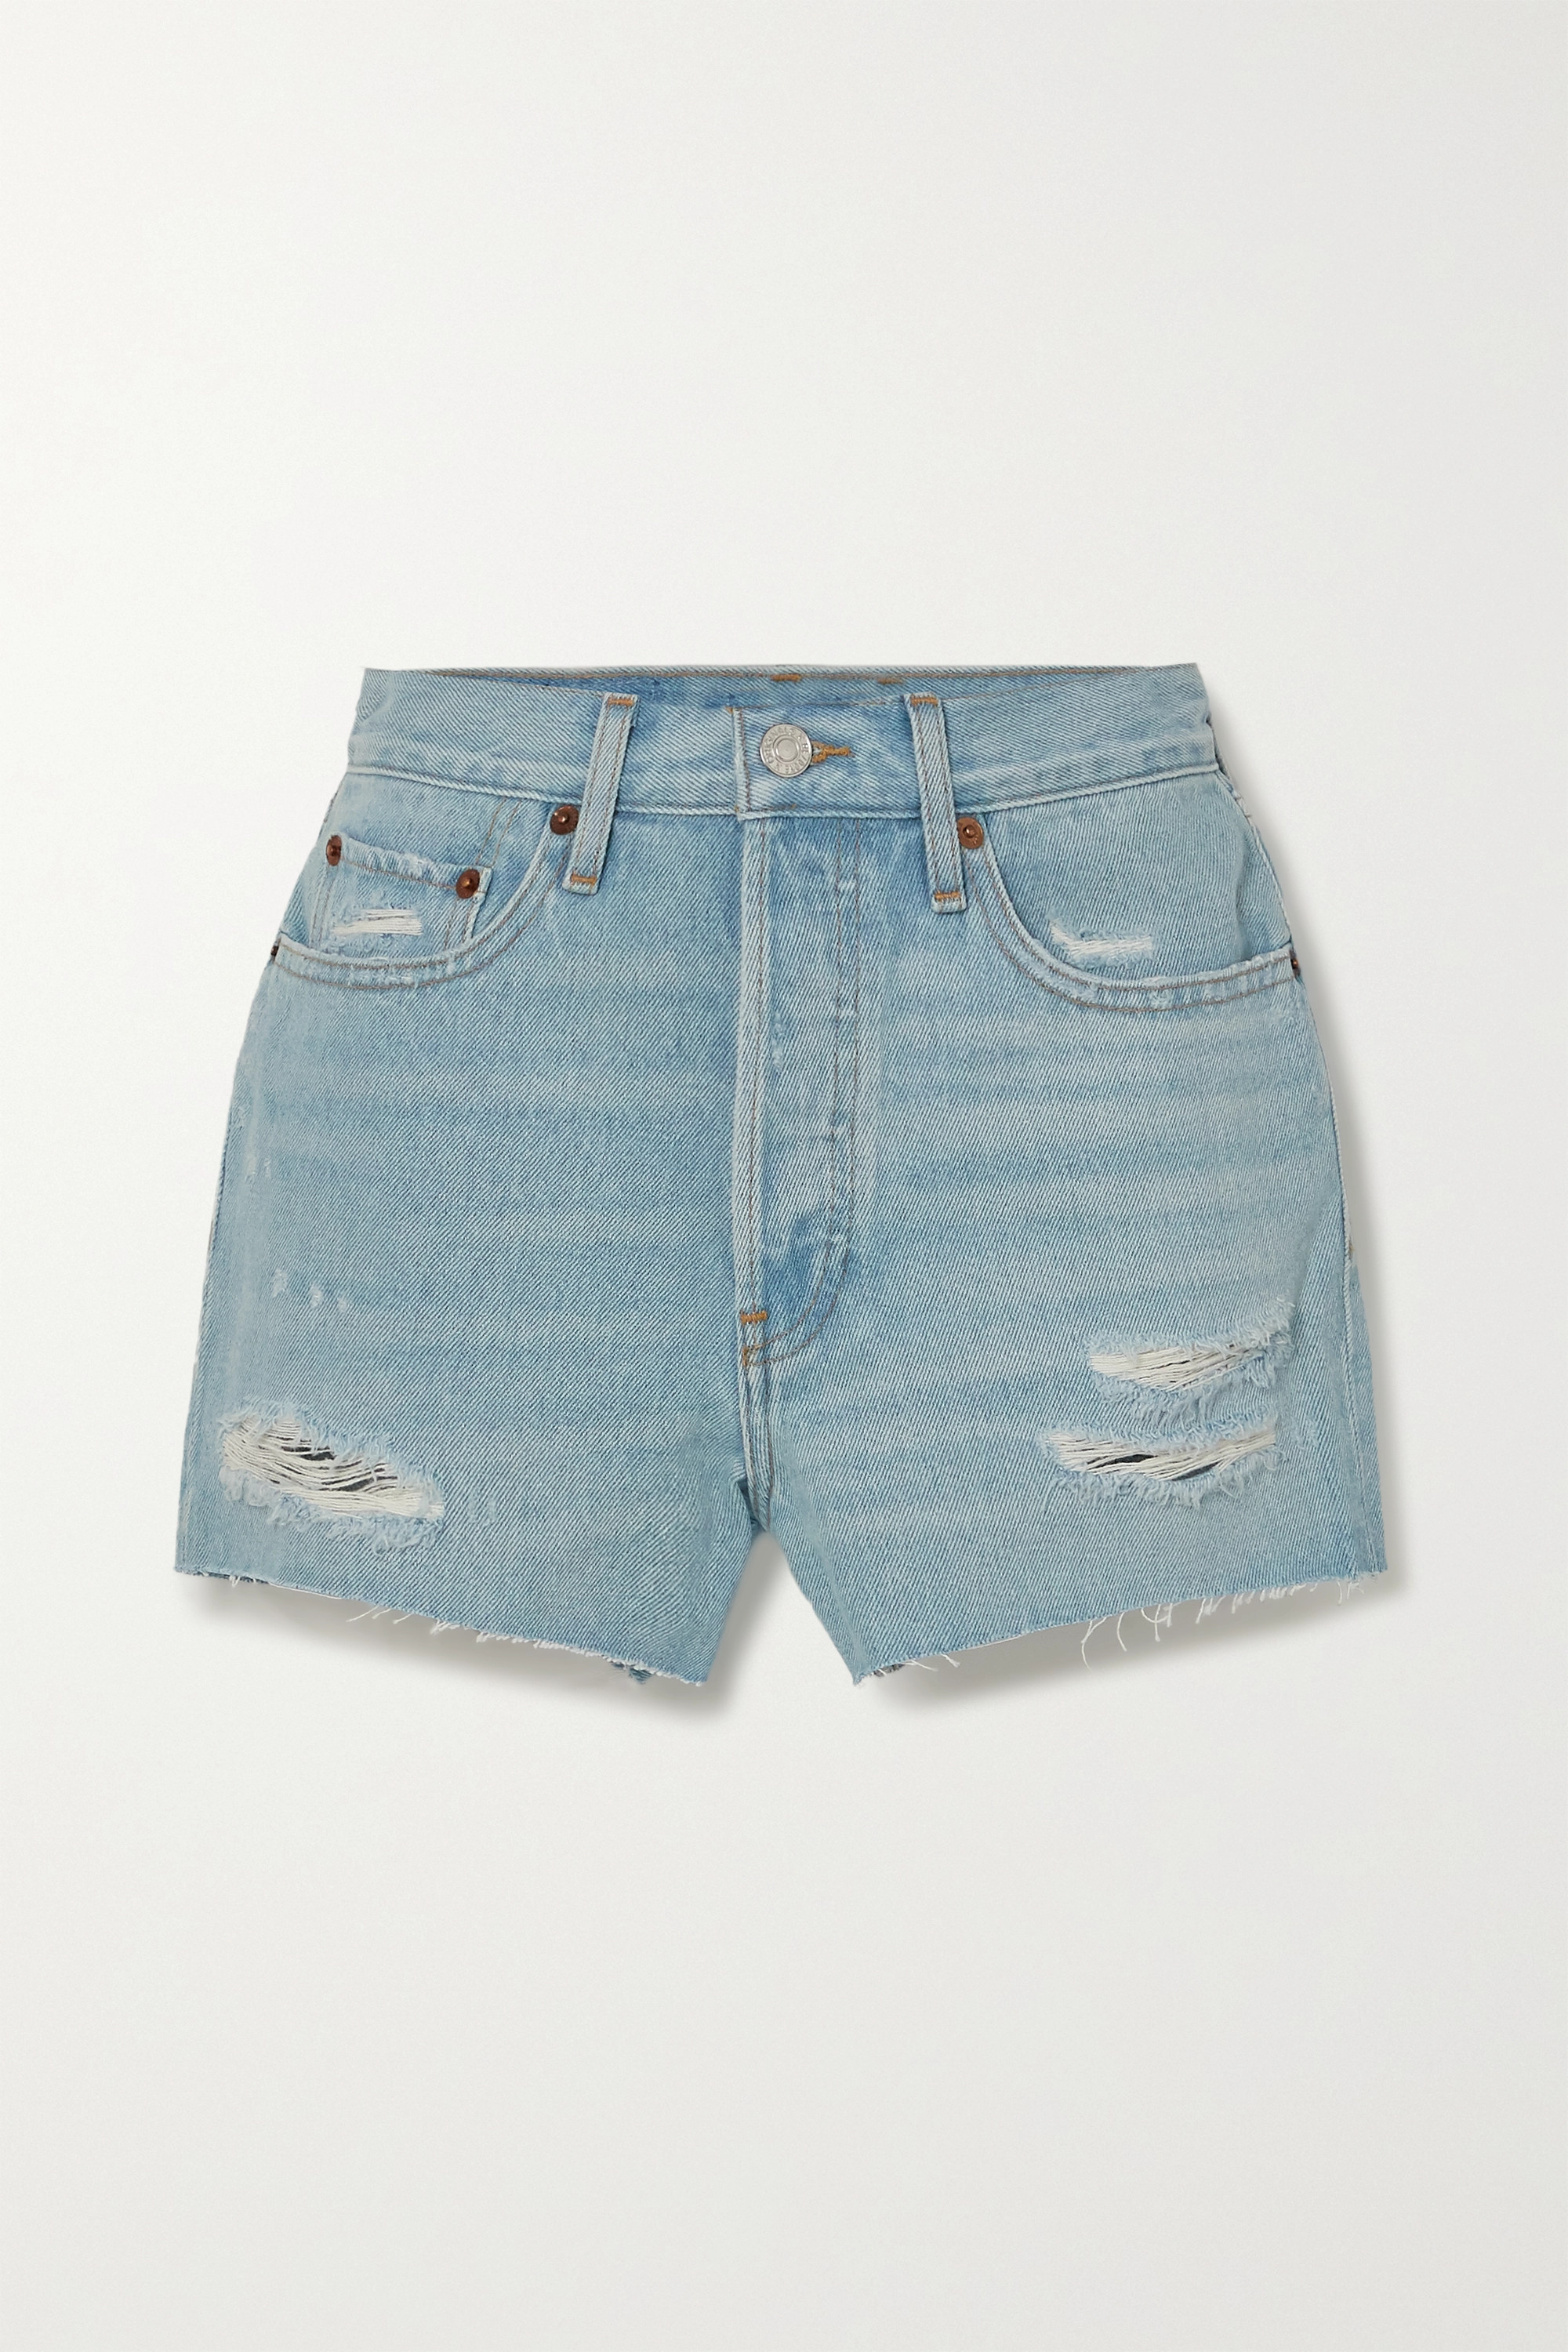 RE/DONE - 70s distressed denim shorts